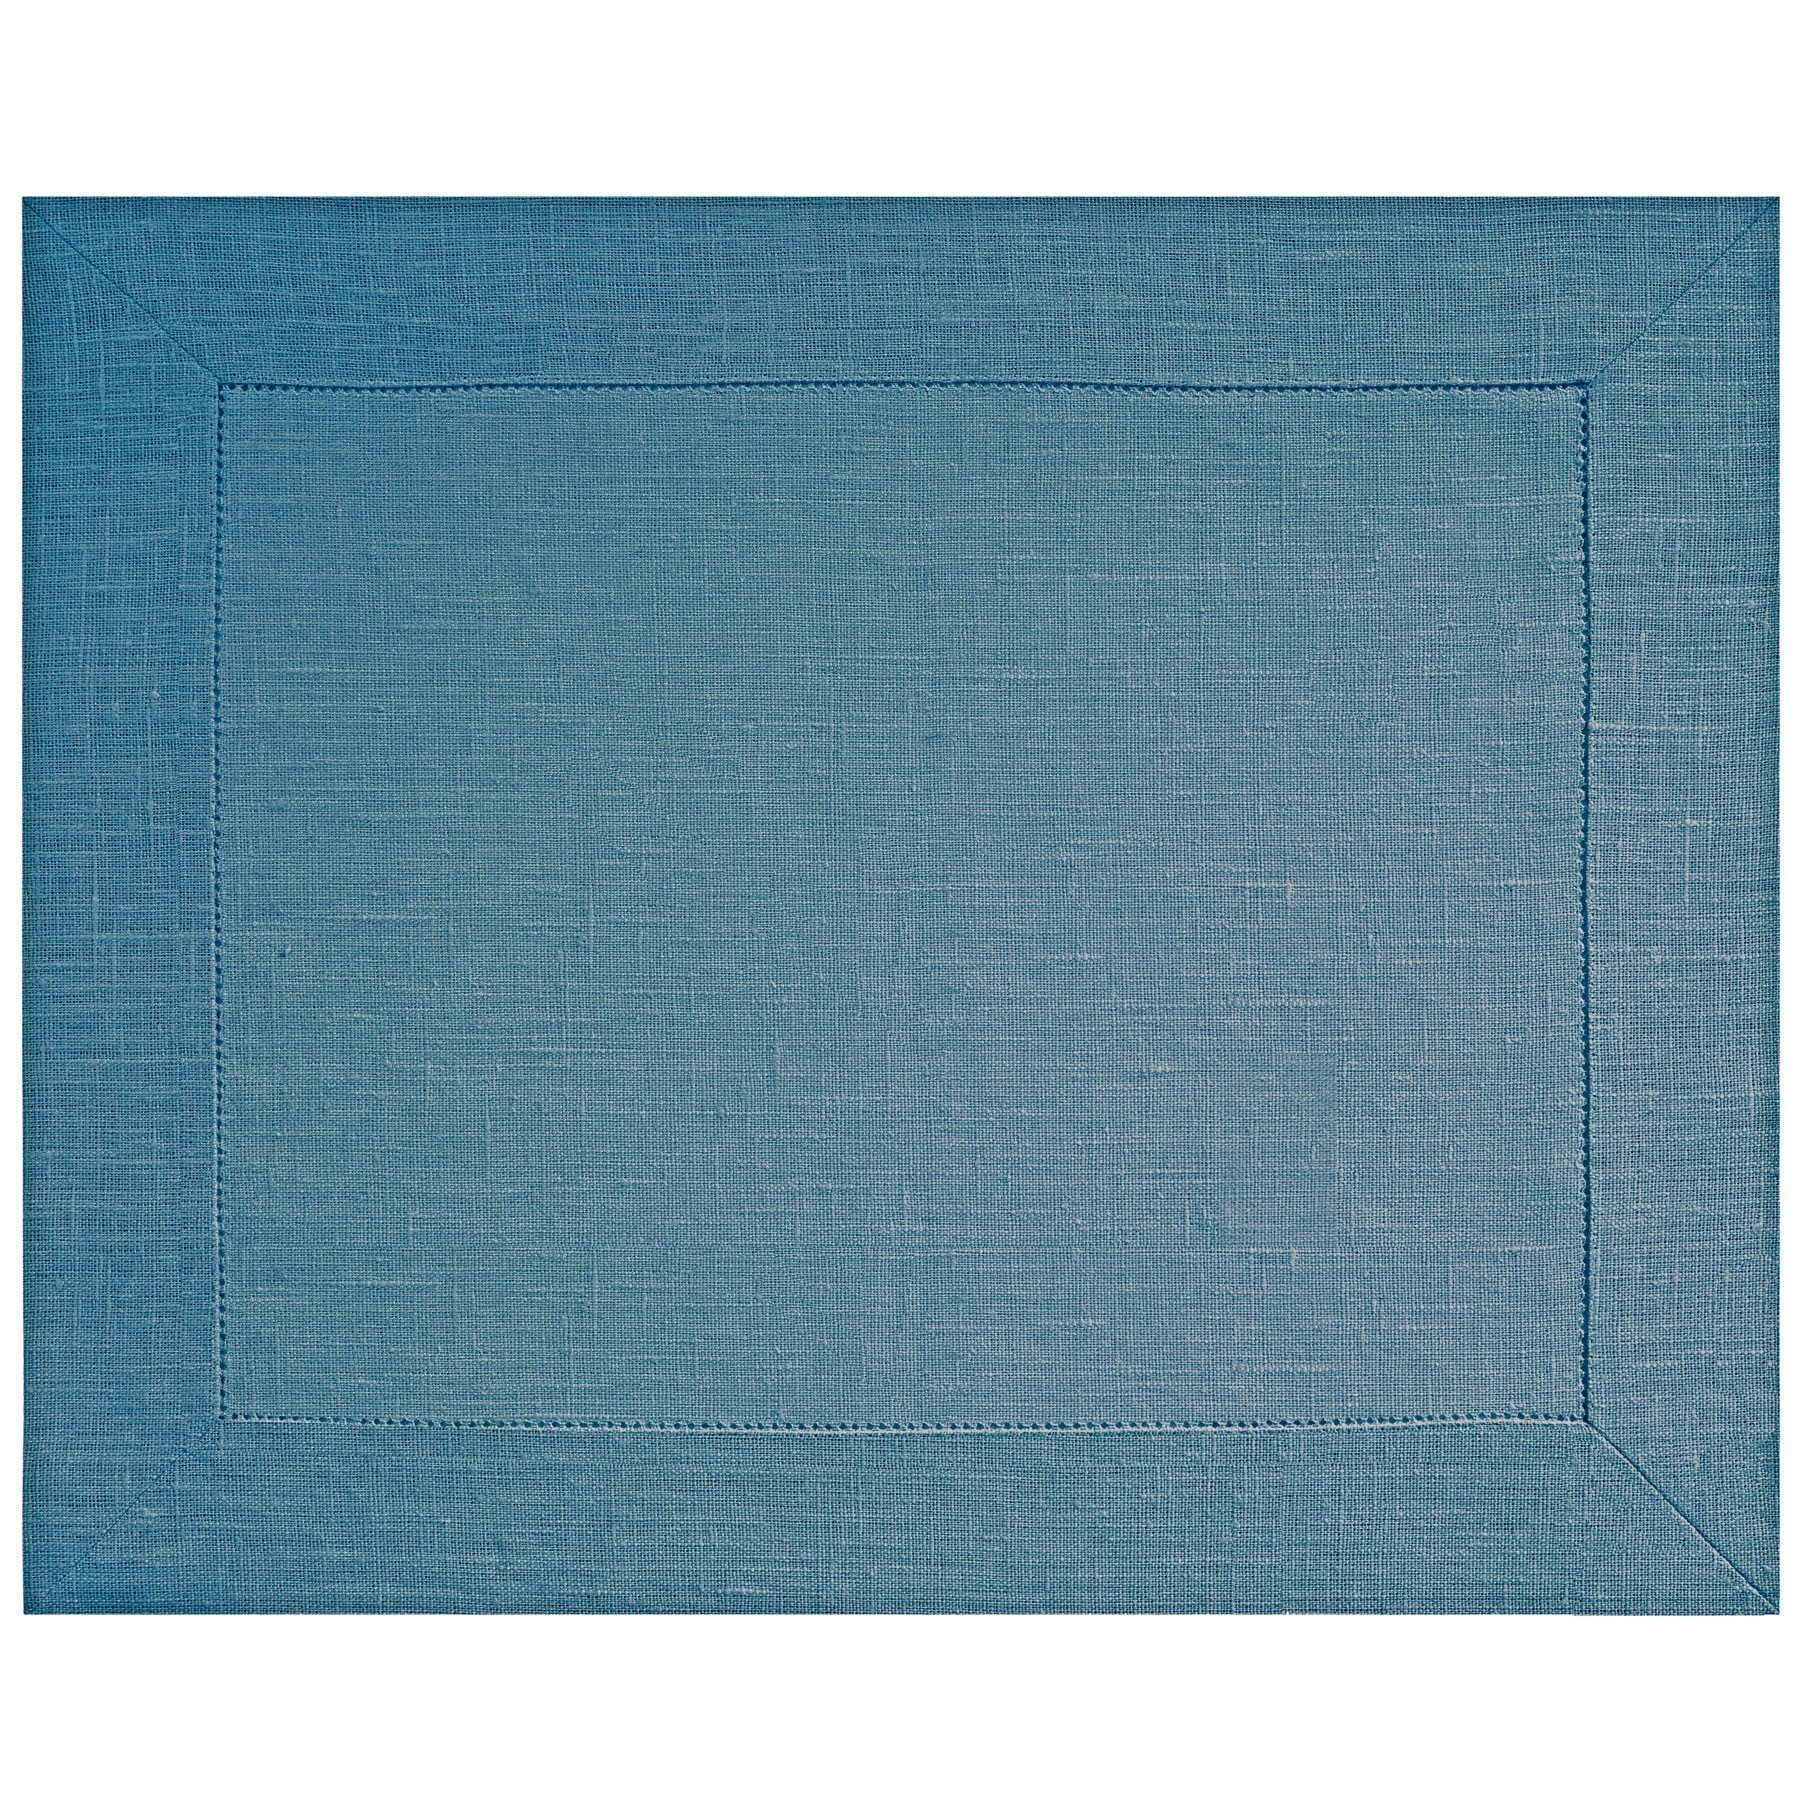 PLACEMAT <br />niagara blue